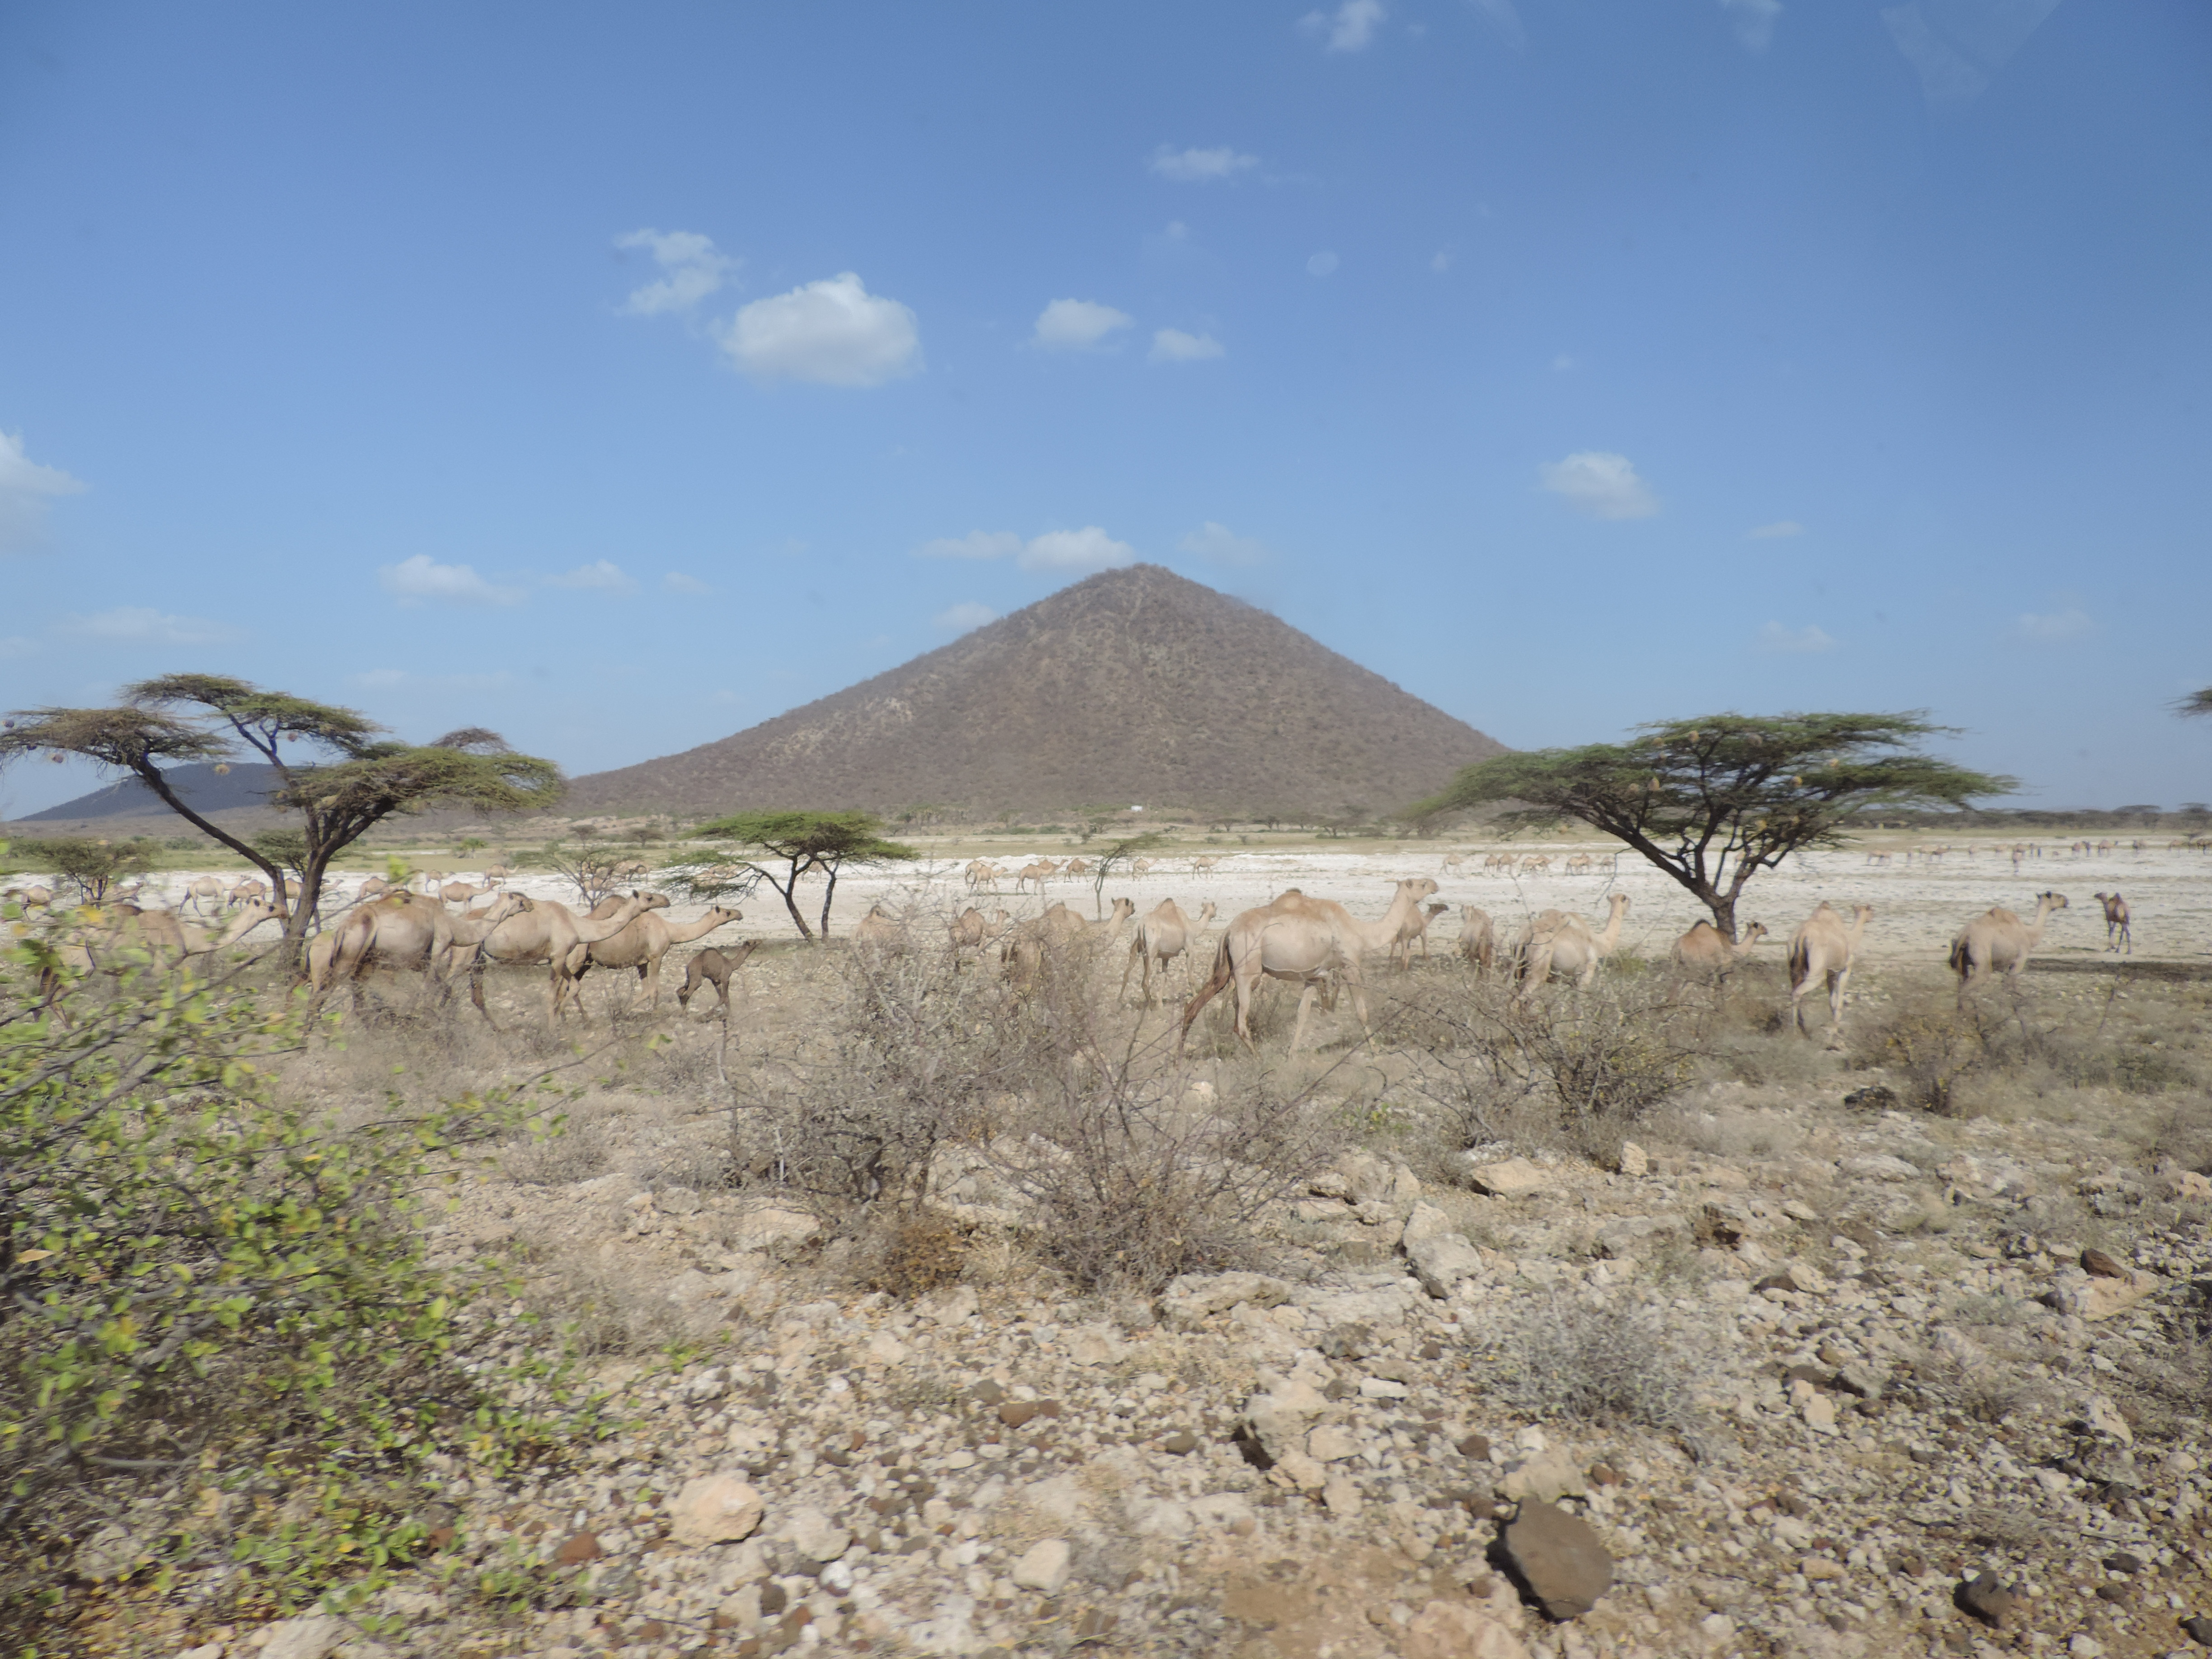 Camels in Isiolo County (photo credit AVCD/Muthoni Njiru).